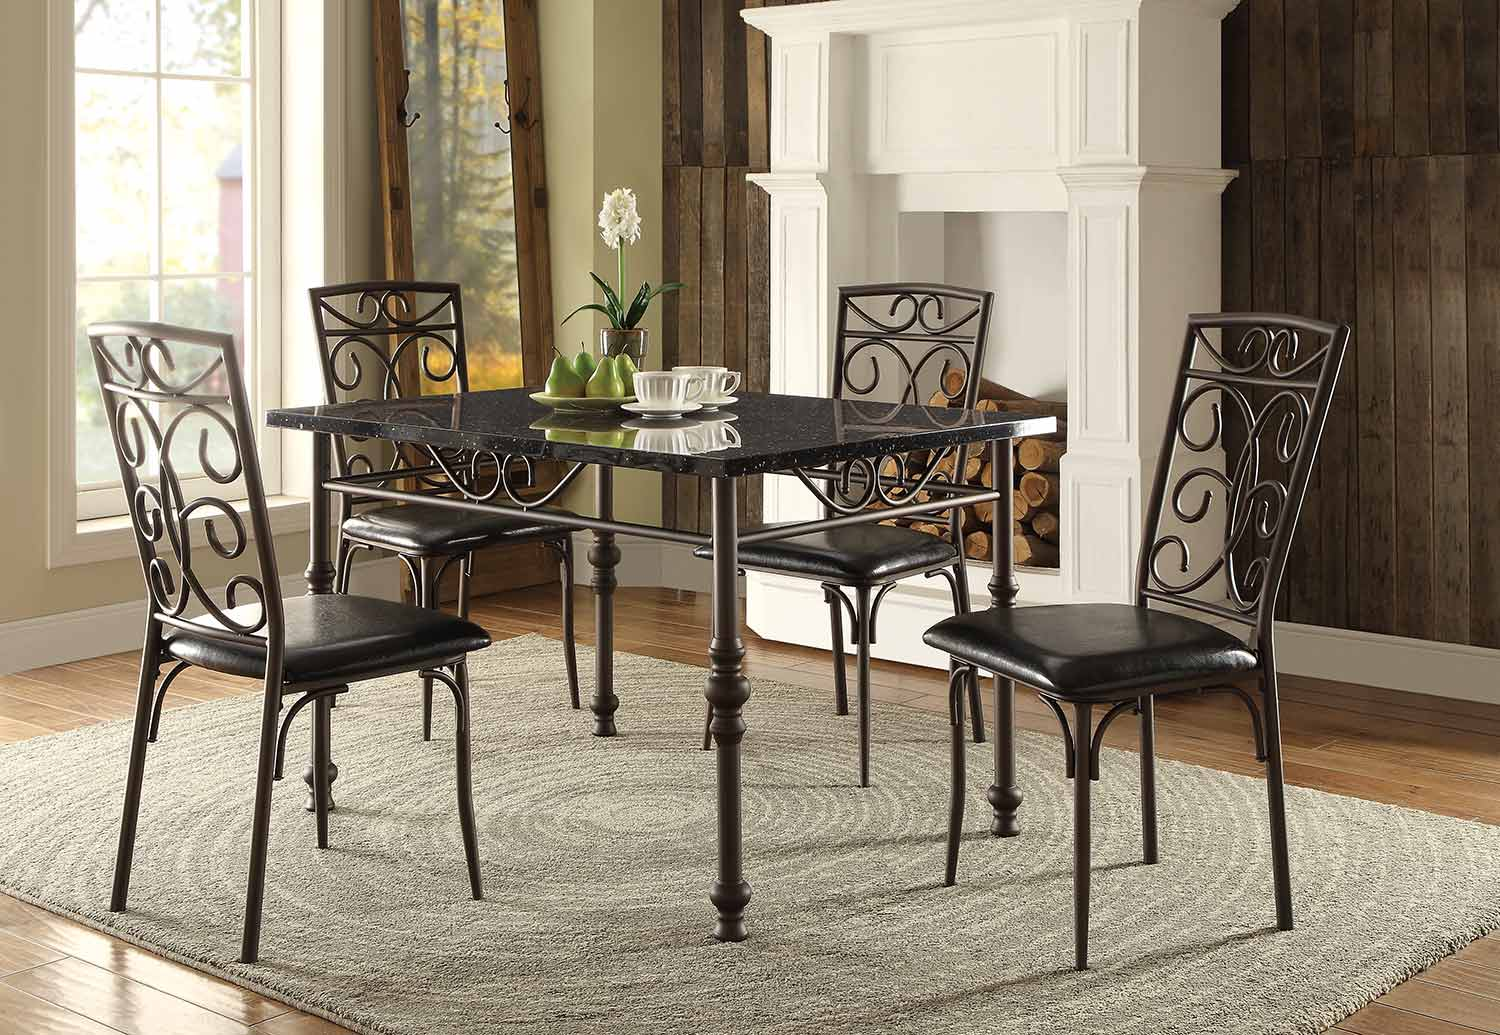 Homelegance Dryden Dining Set - Metal